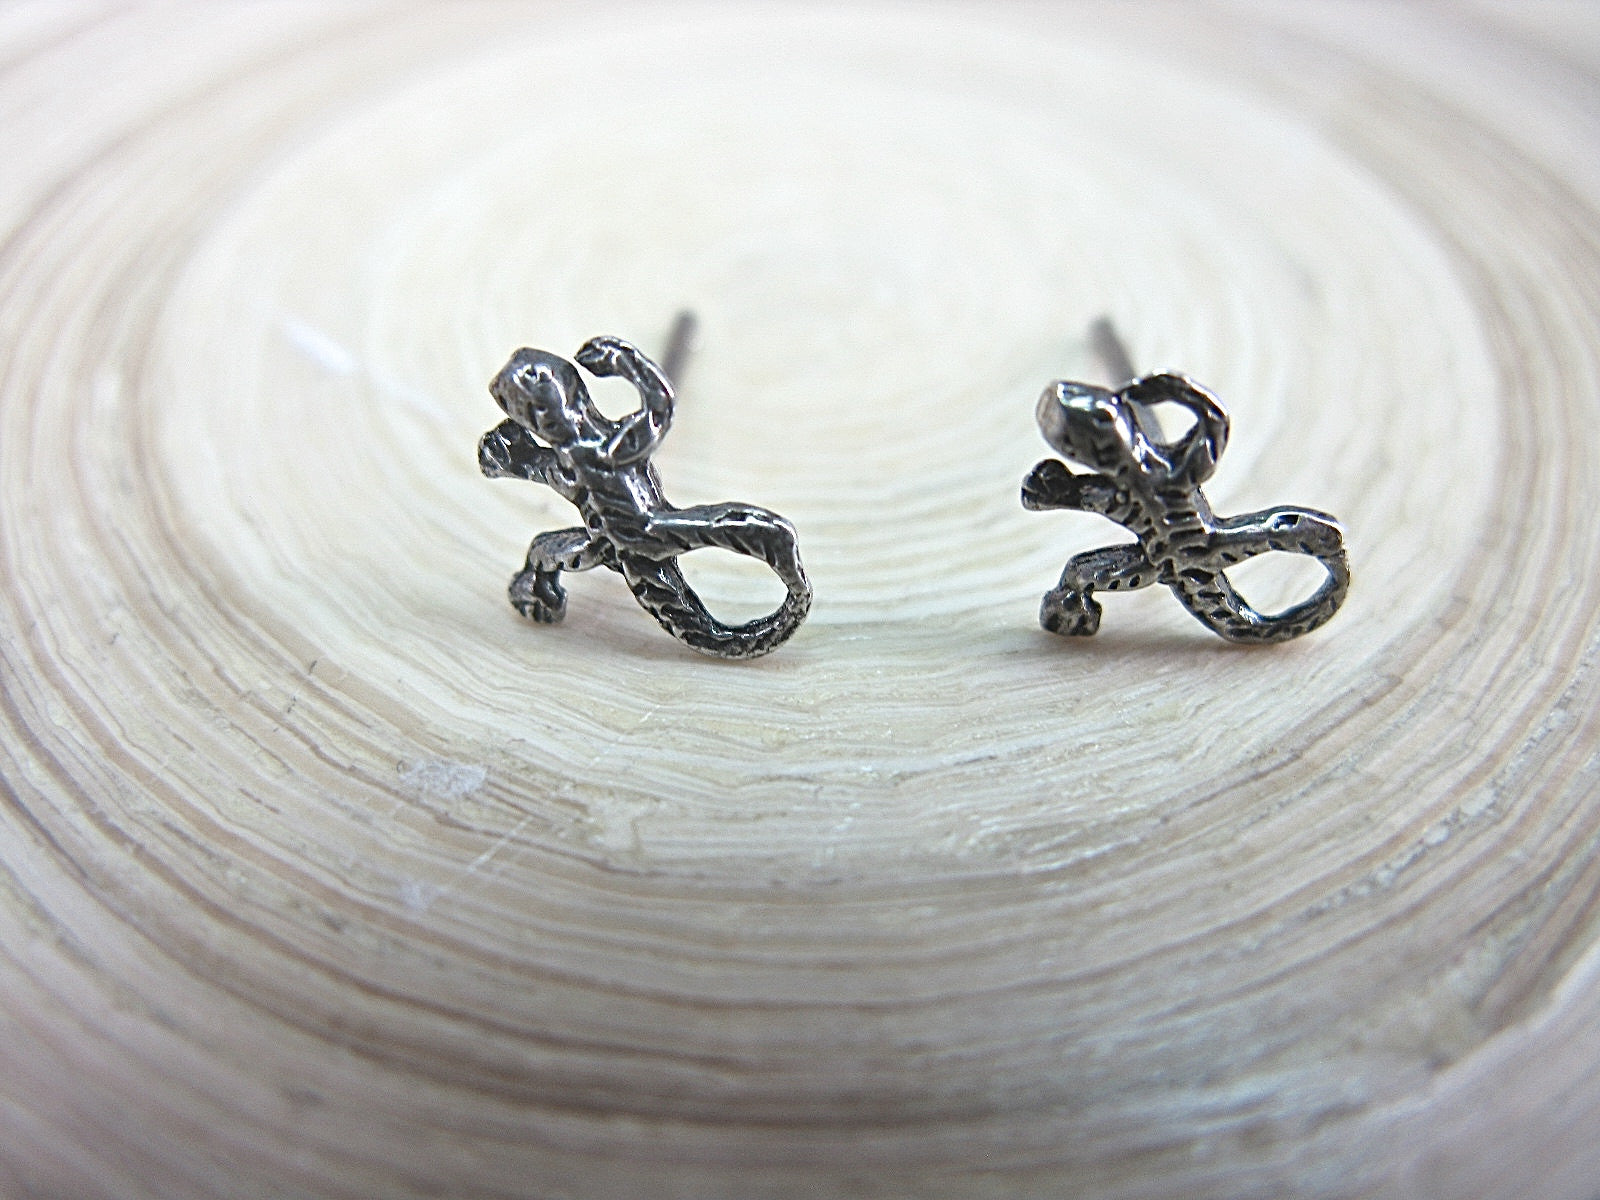 Gecko Stud Earrings 925 Sterling Silver Stud Faith Owl - Faith Owl